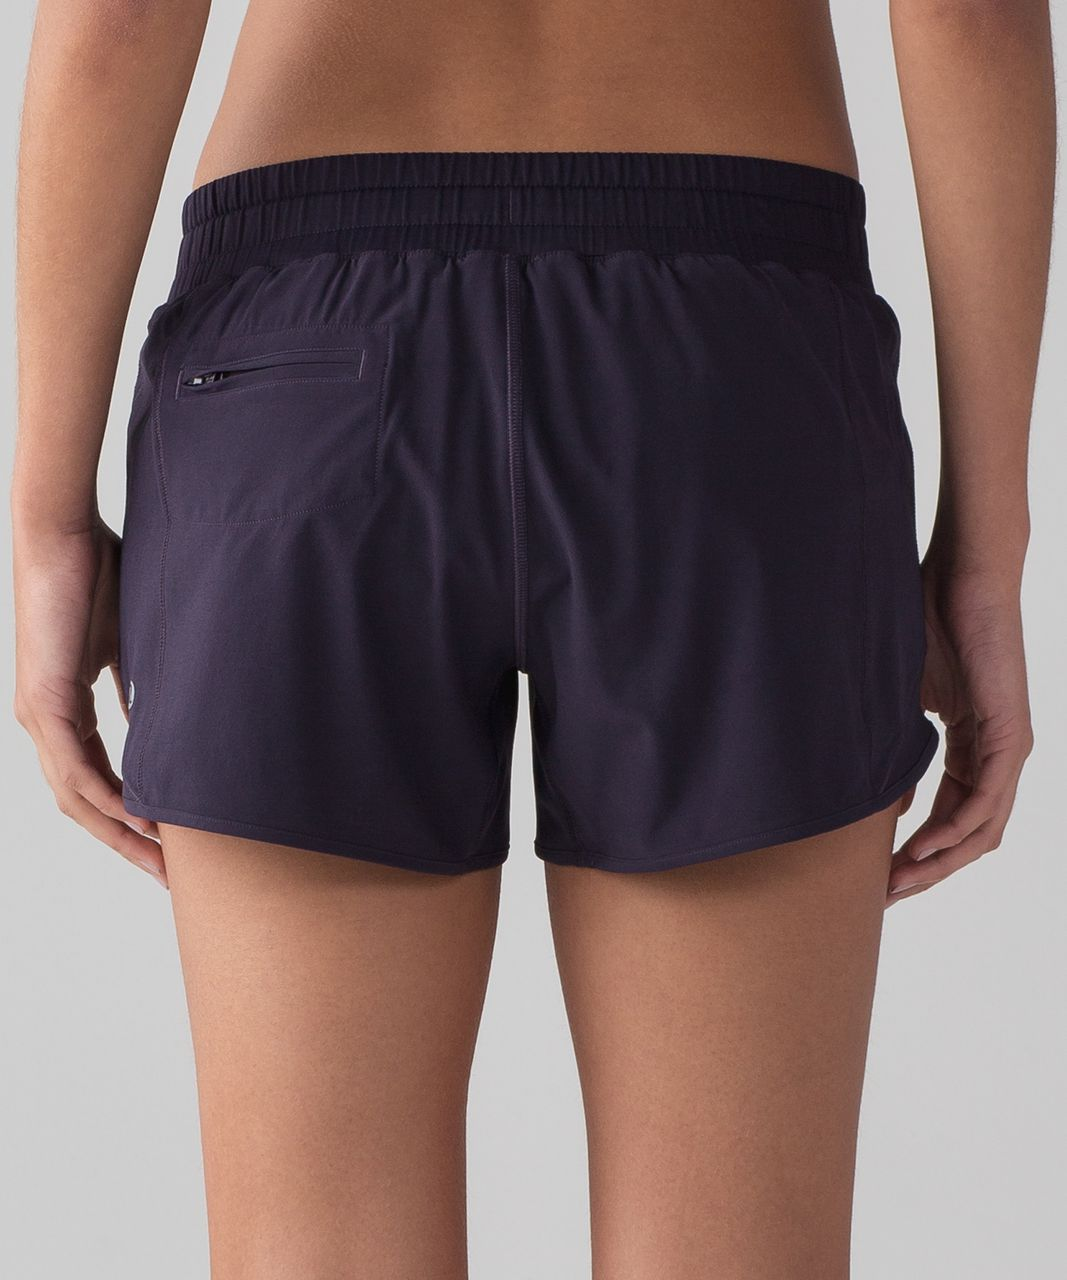 "Lululemon Hotty Hot Short (Long 4"") - Black Grape"